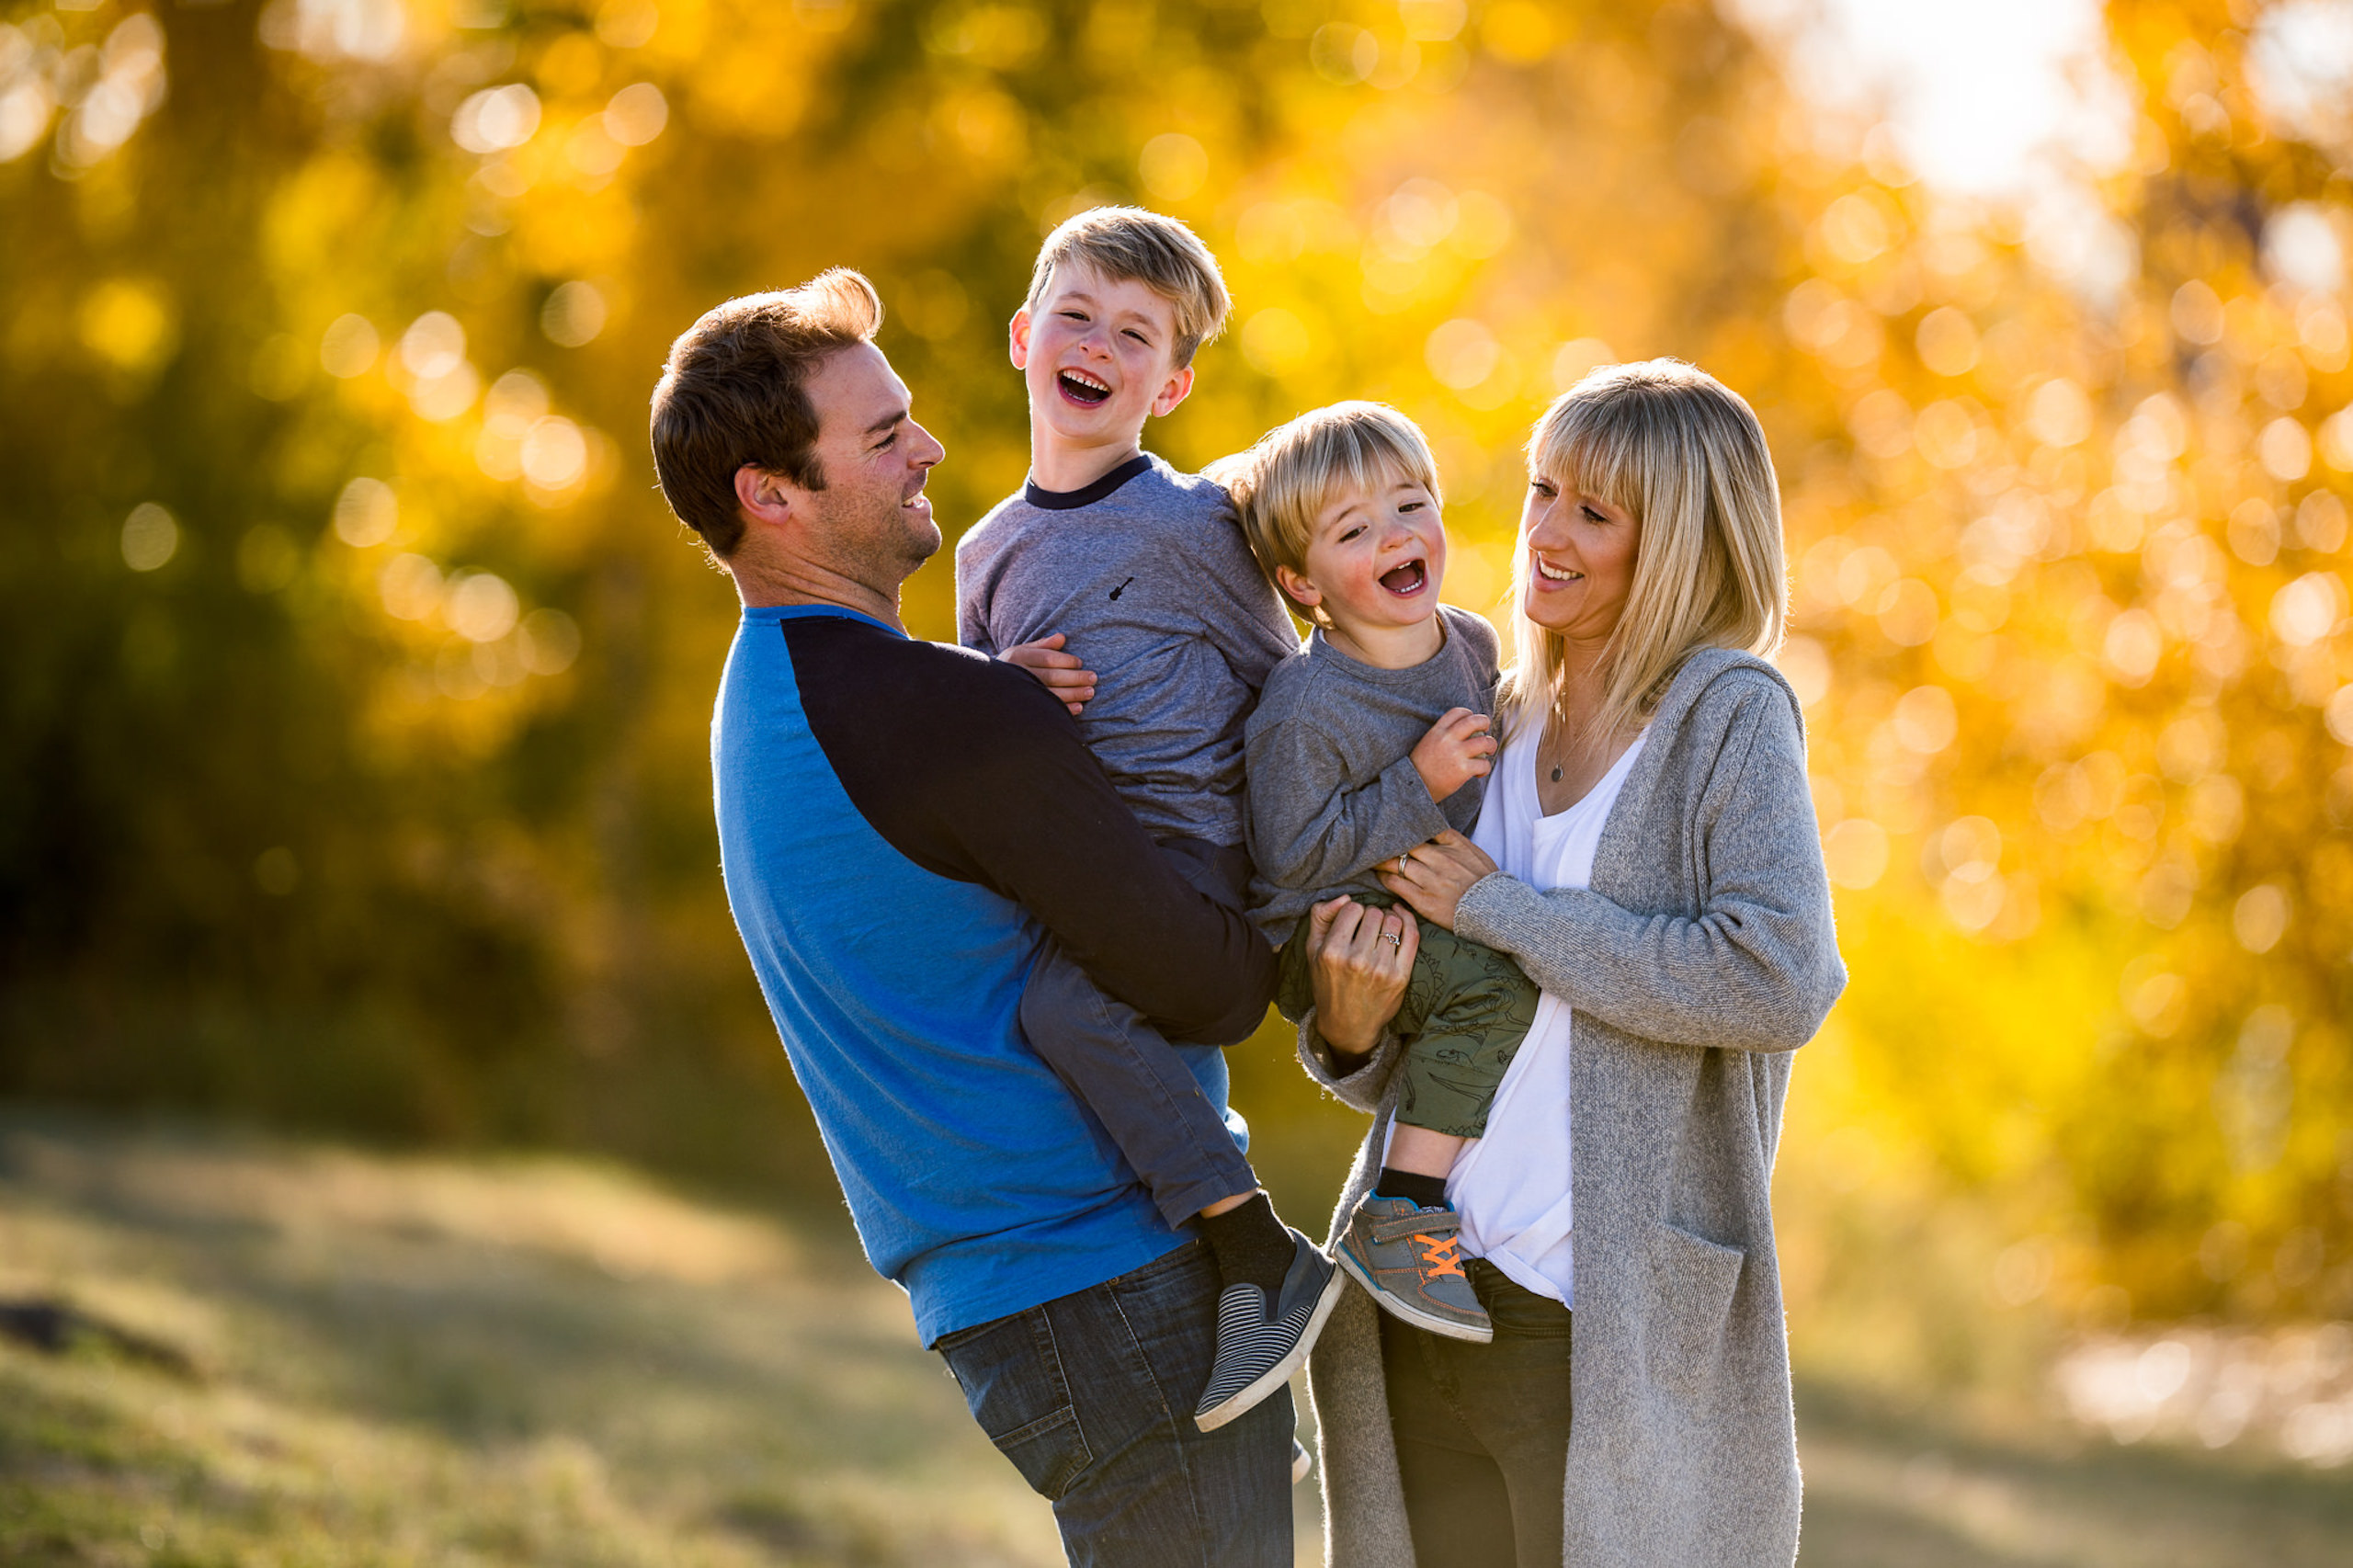 family of four in the park all smiling at reaching with yellow trees in the background